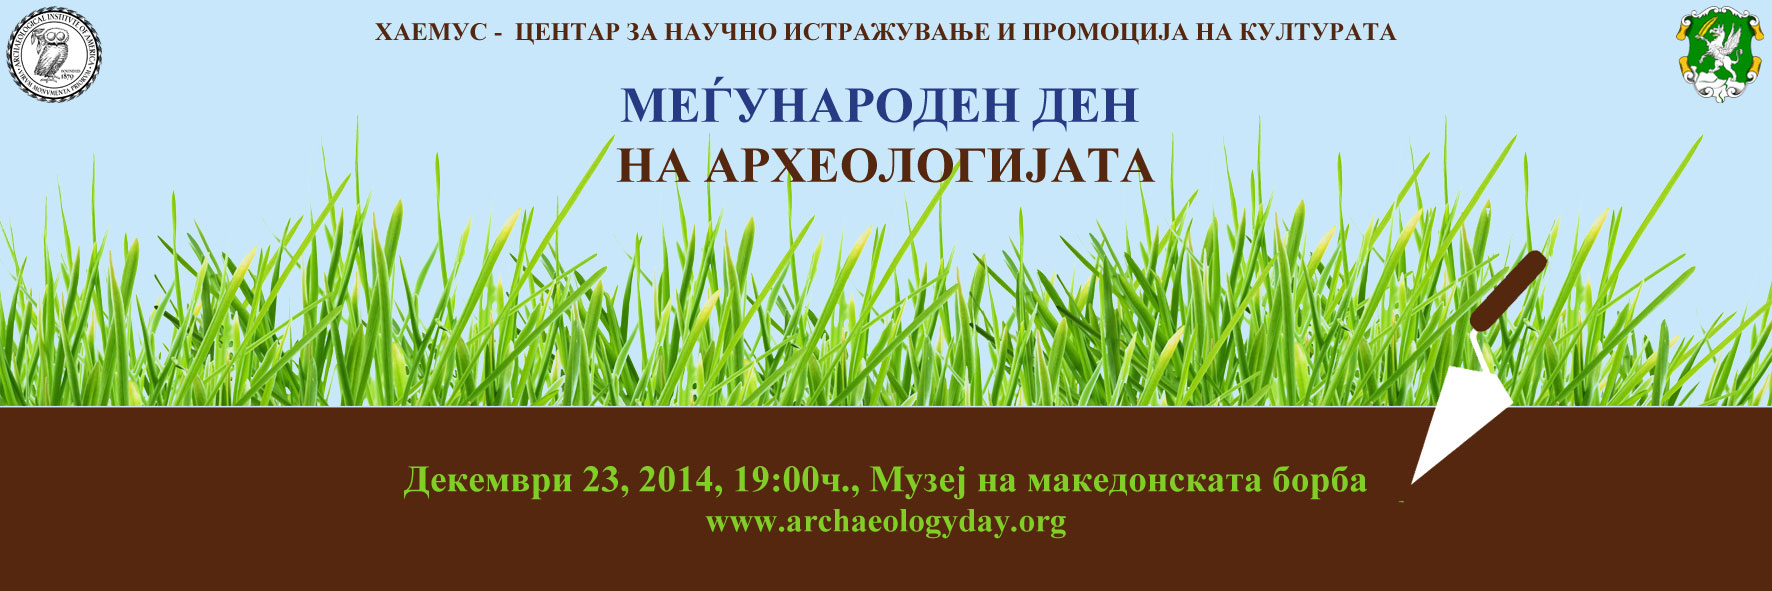 International-arch-day-2014-vleznica-23.12.2014